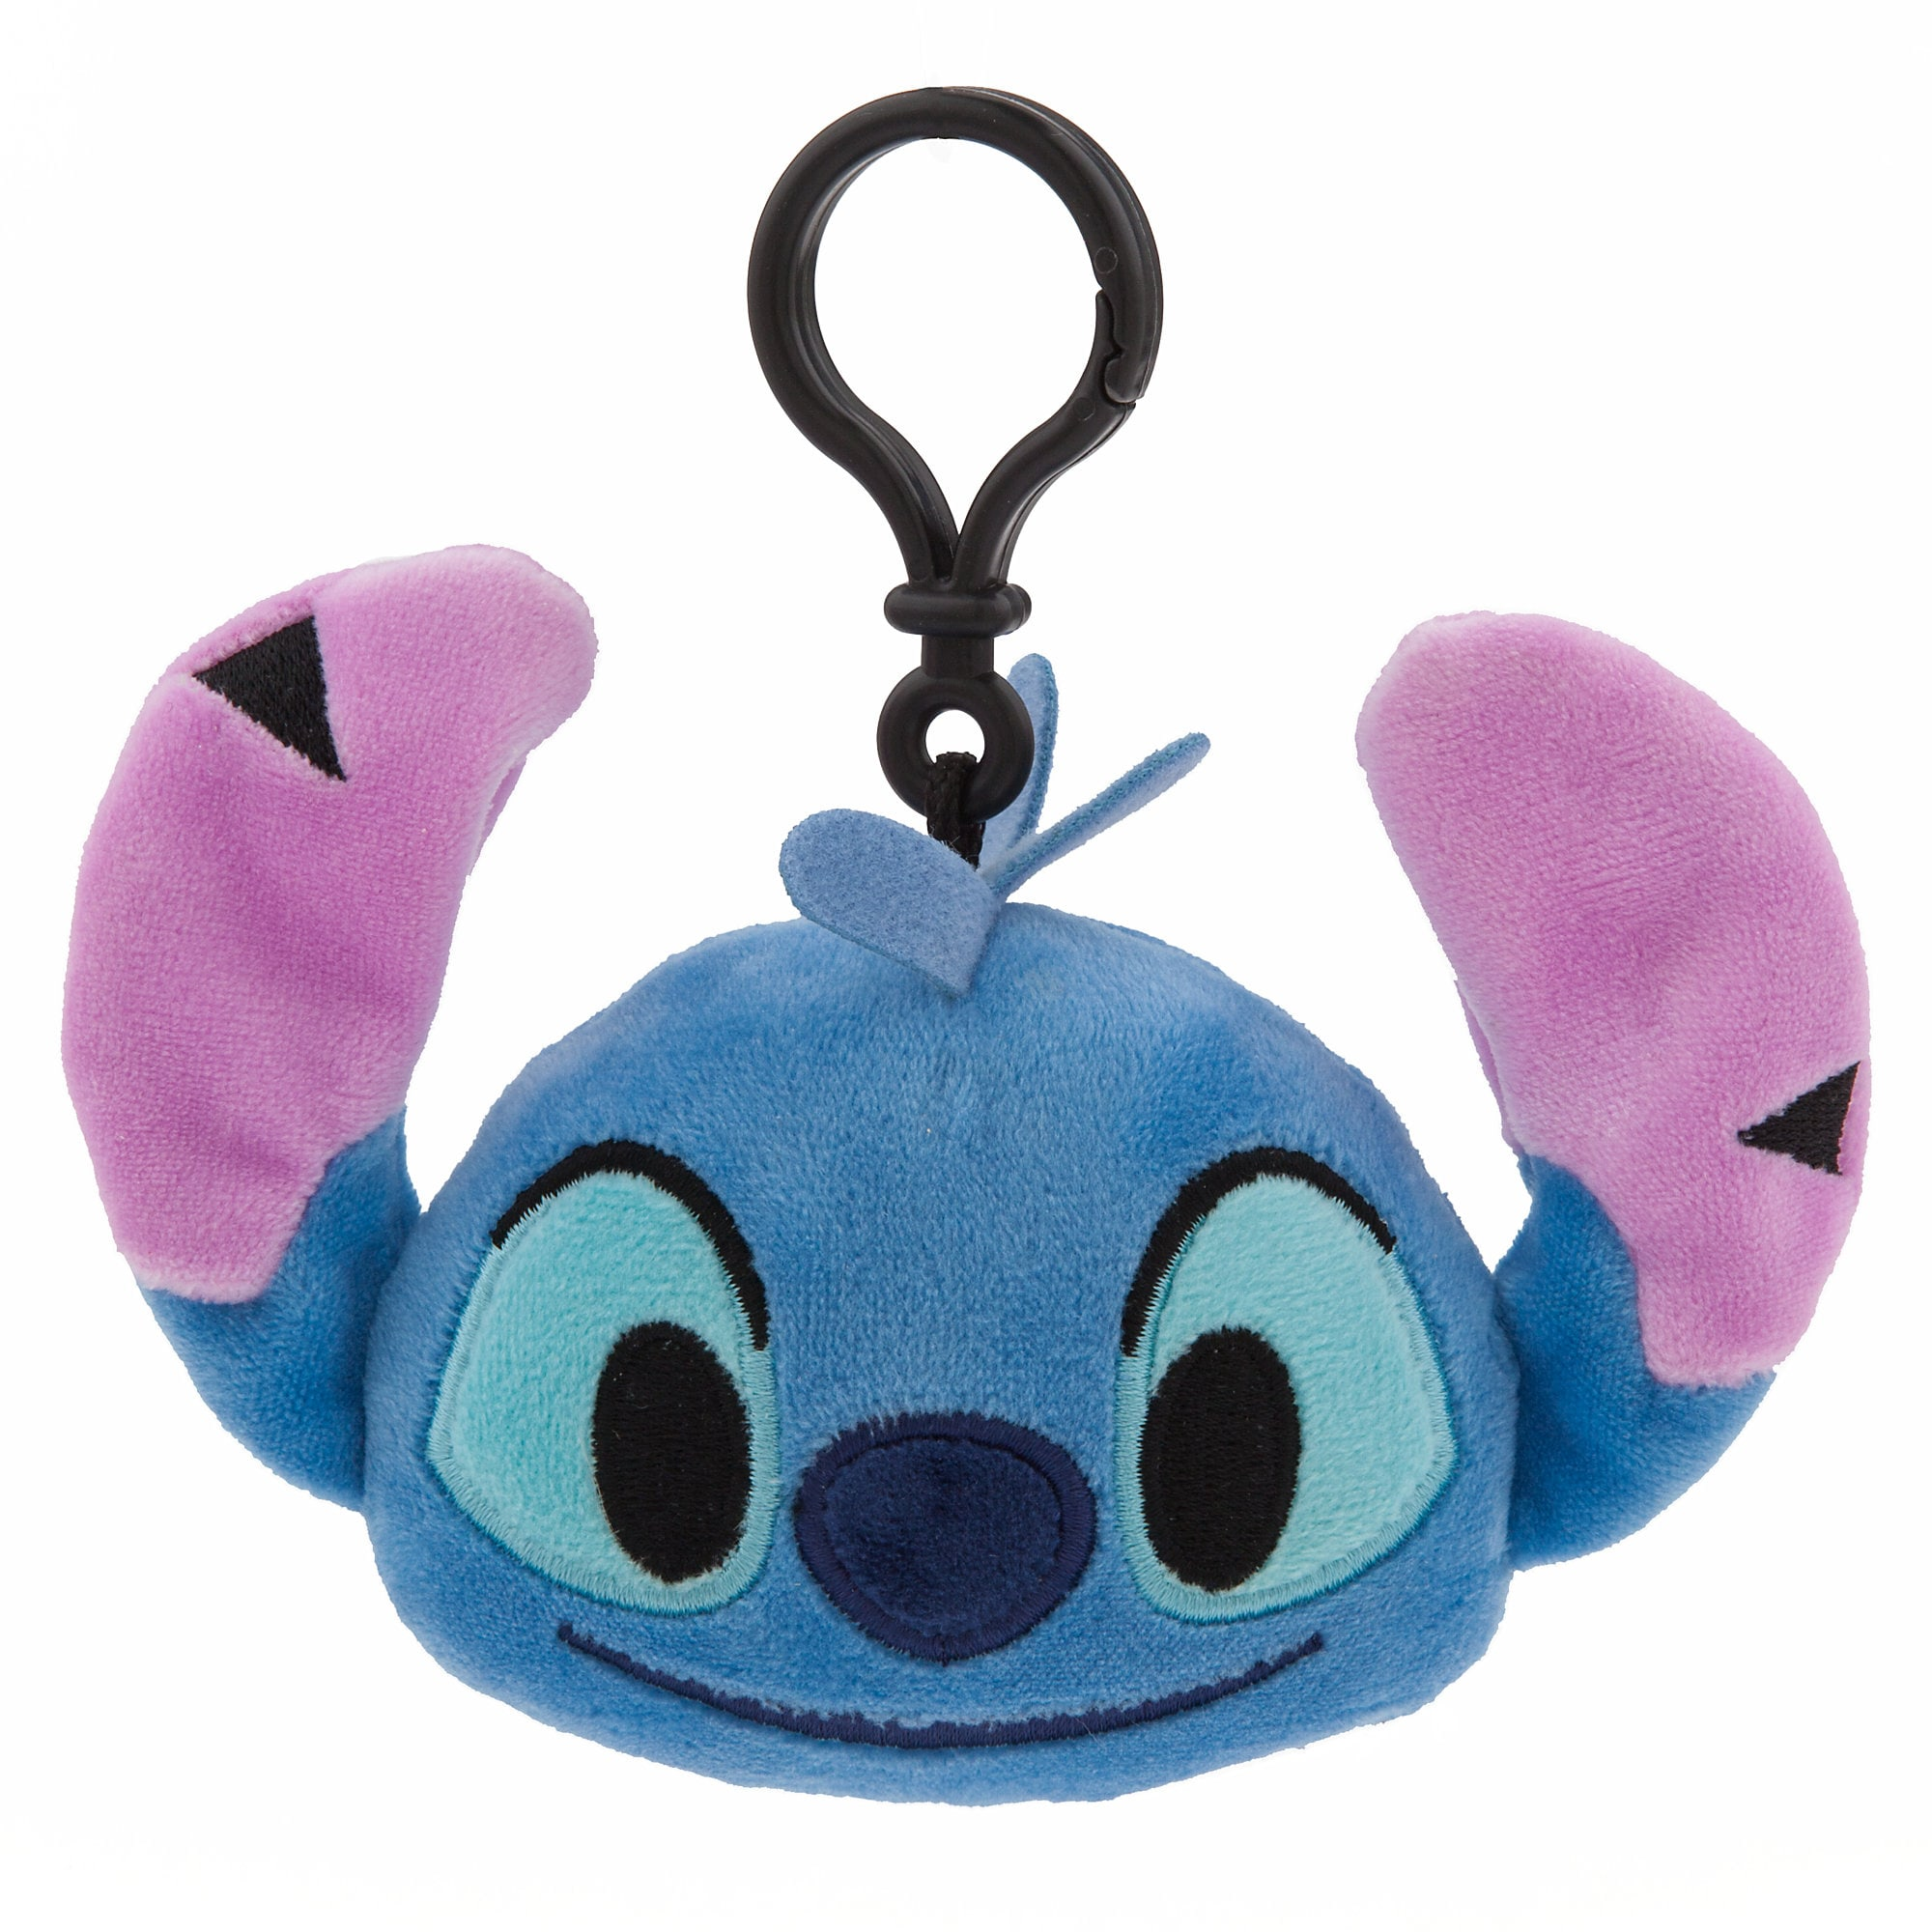 Stitch Emoji Plush Backpack Clip - 4''